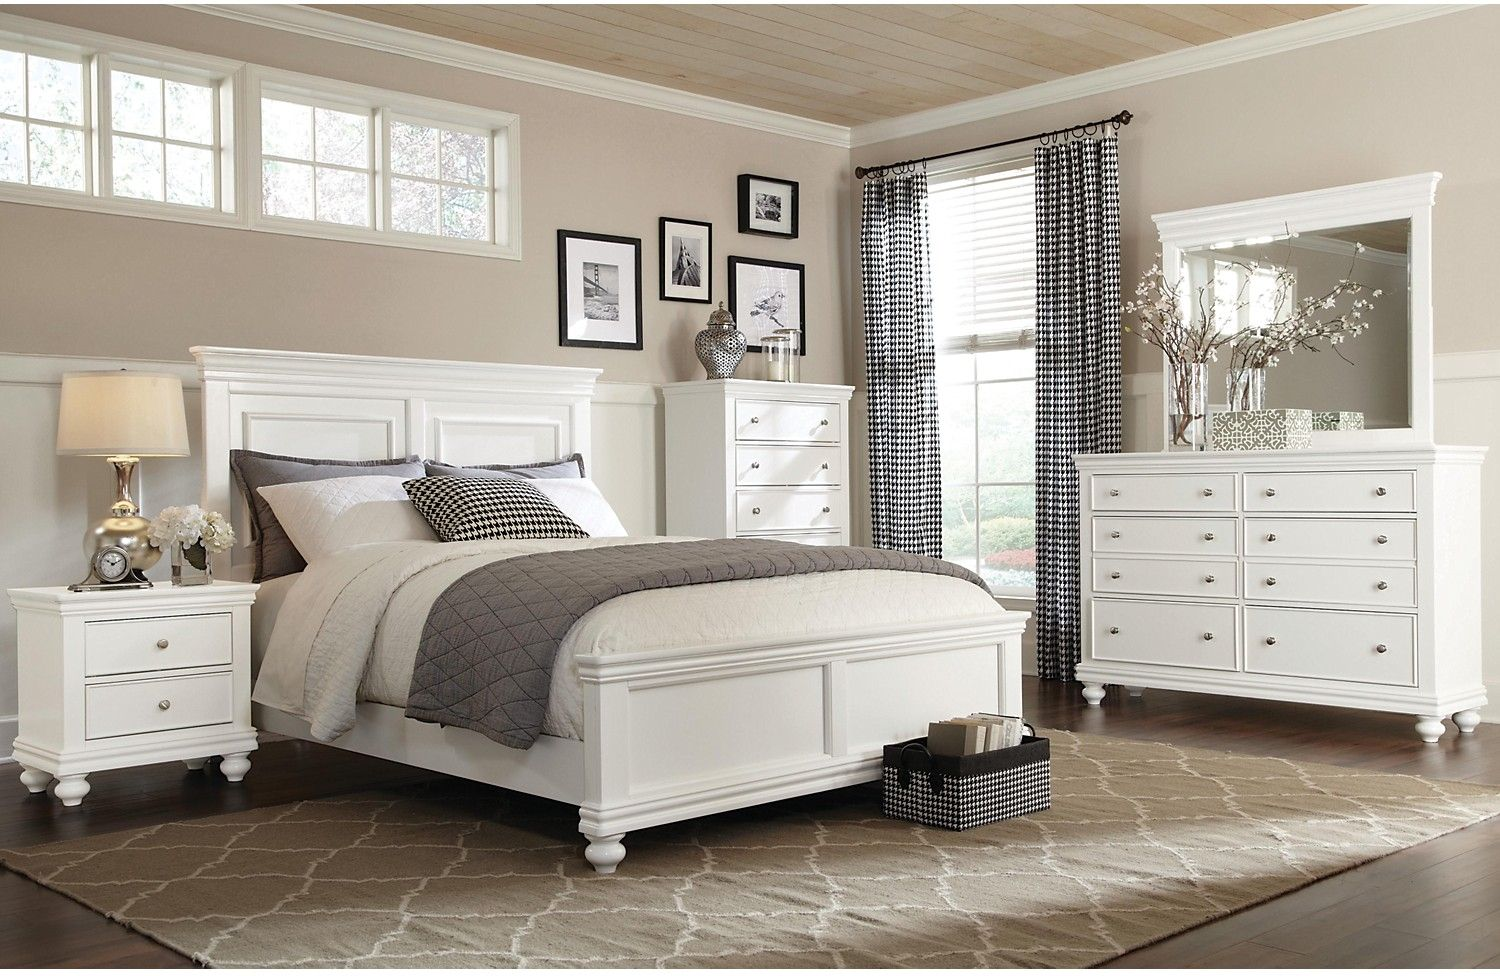 Bridgeport 6 piece queen bedroom set white queen - Contemporary king bedroom furniture ...